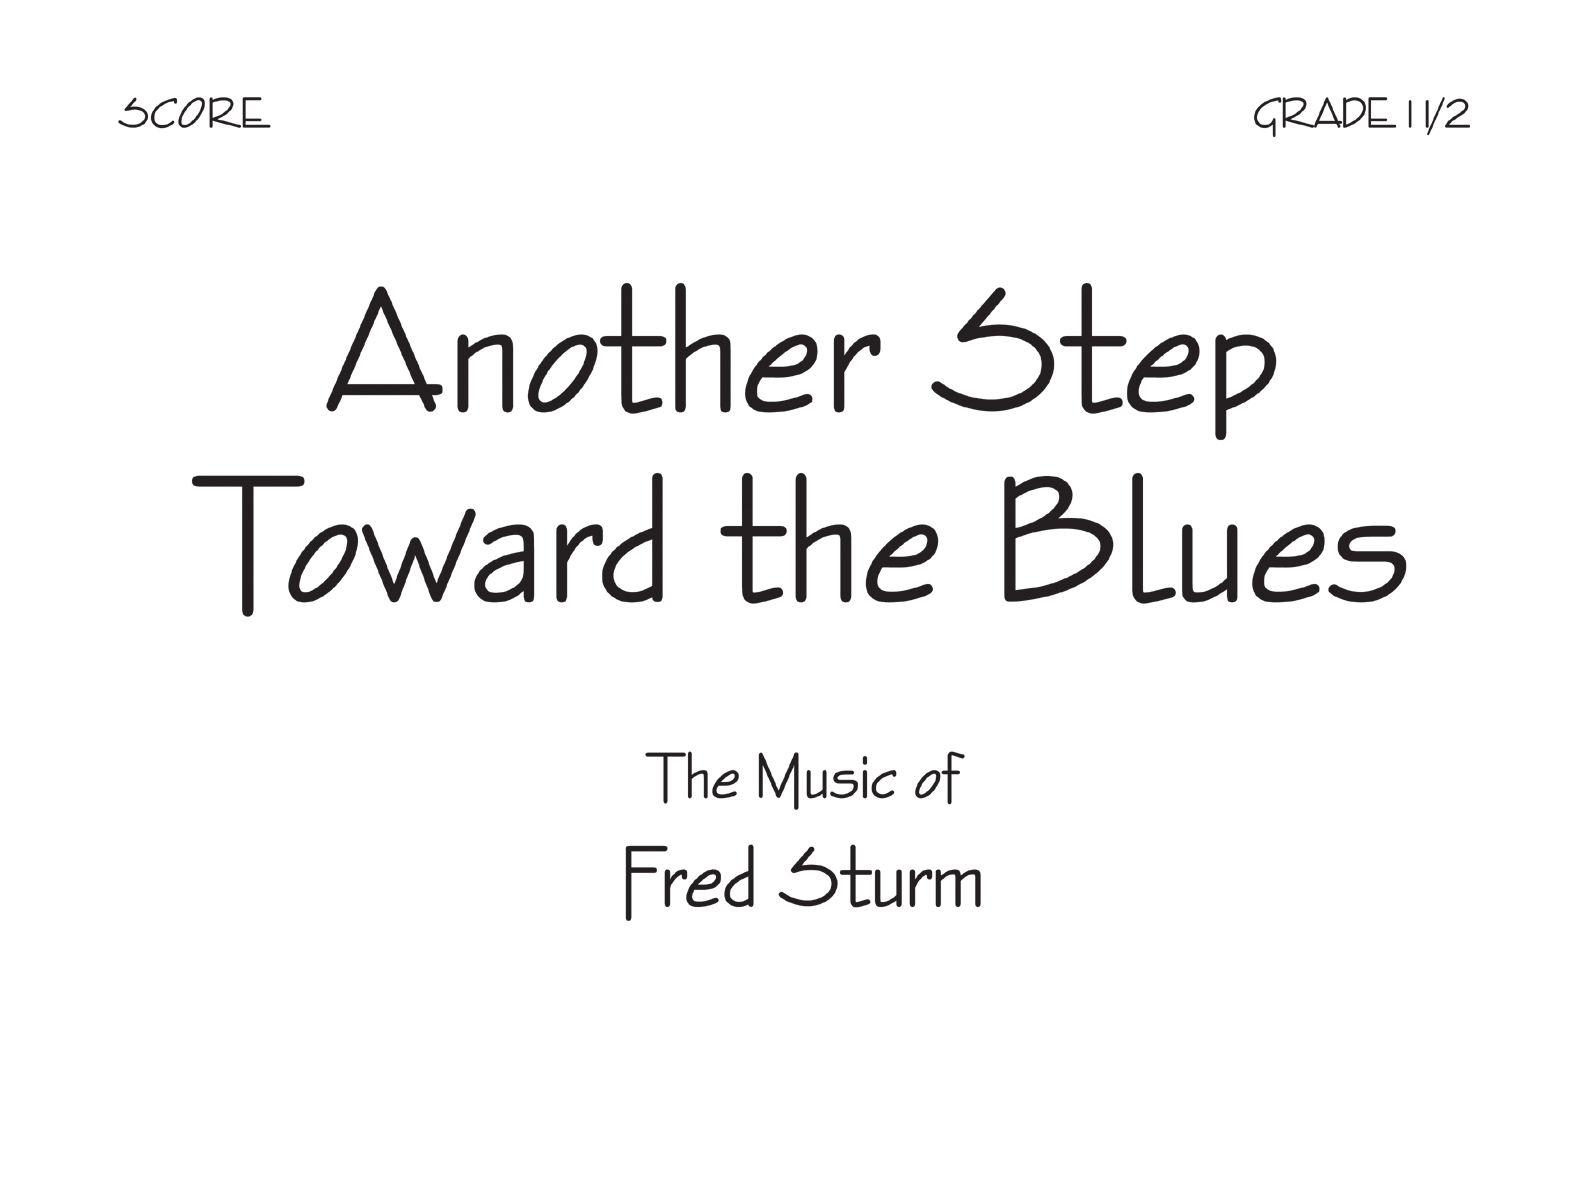 Another Step Toward the Blues - Score